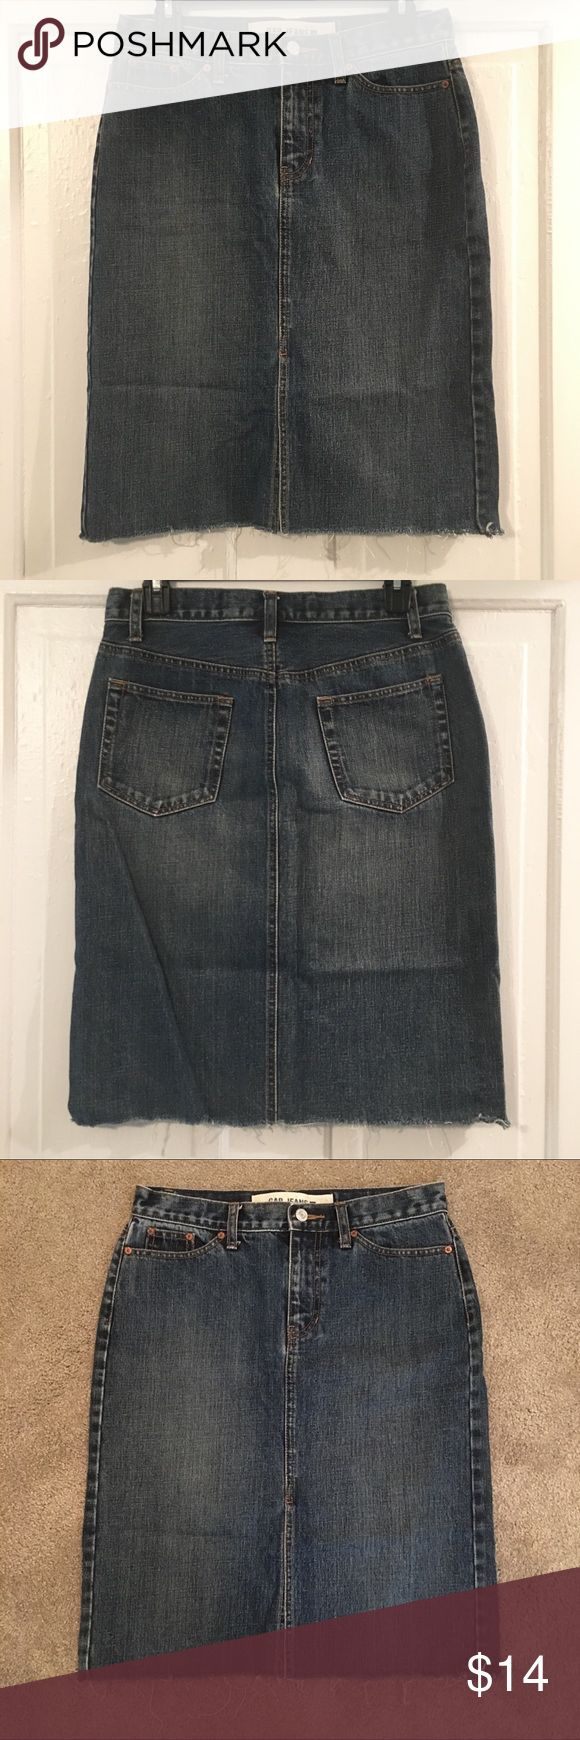 Gap Jeans Denim Skirt Gap Jeans Denim Blue Skirt Size 4 Midi - 23 inches long Straight Fit Cropped Hem 100% Cotton Machine Washable Excellent Condition! GAP Skirts Midi